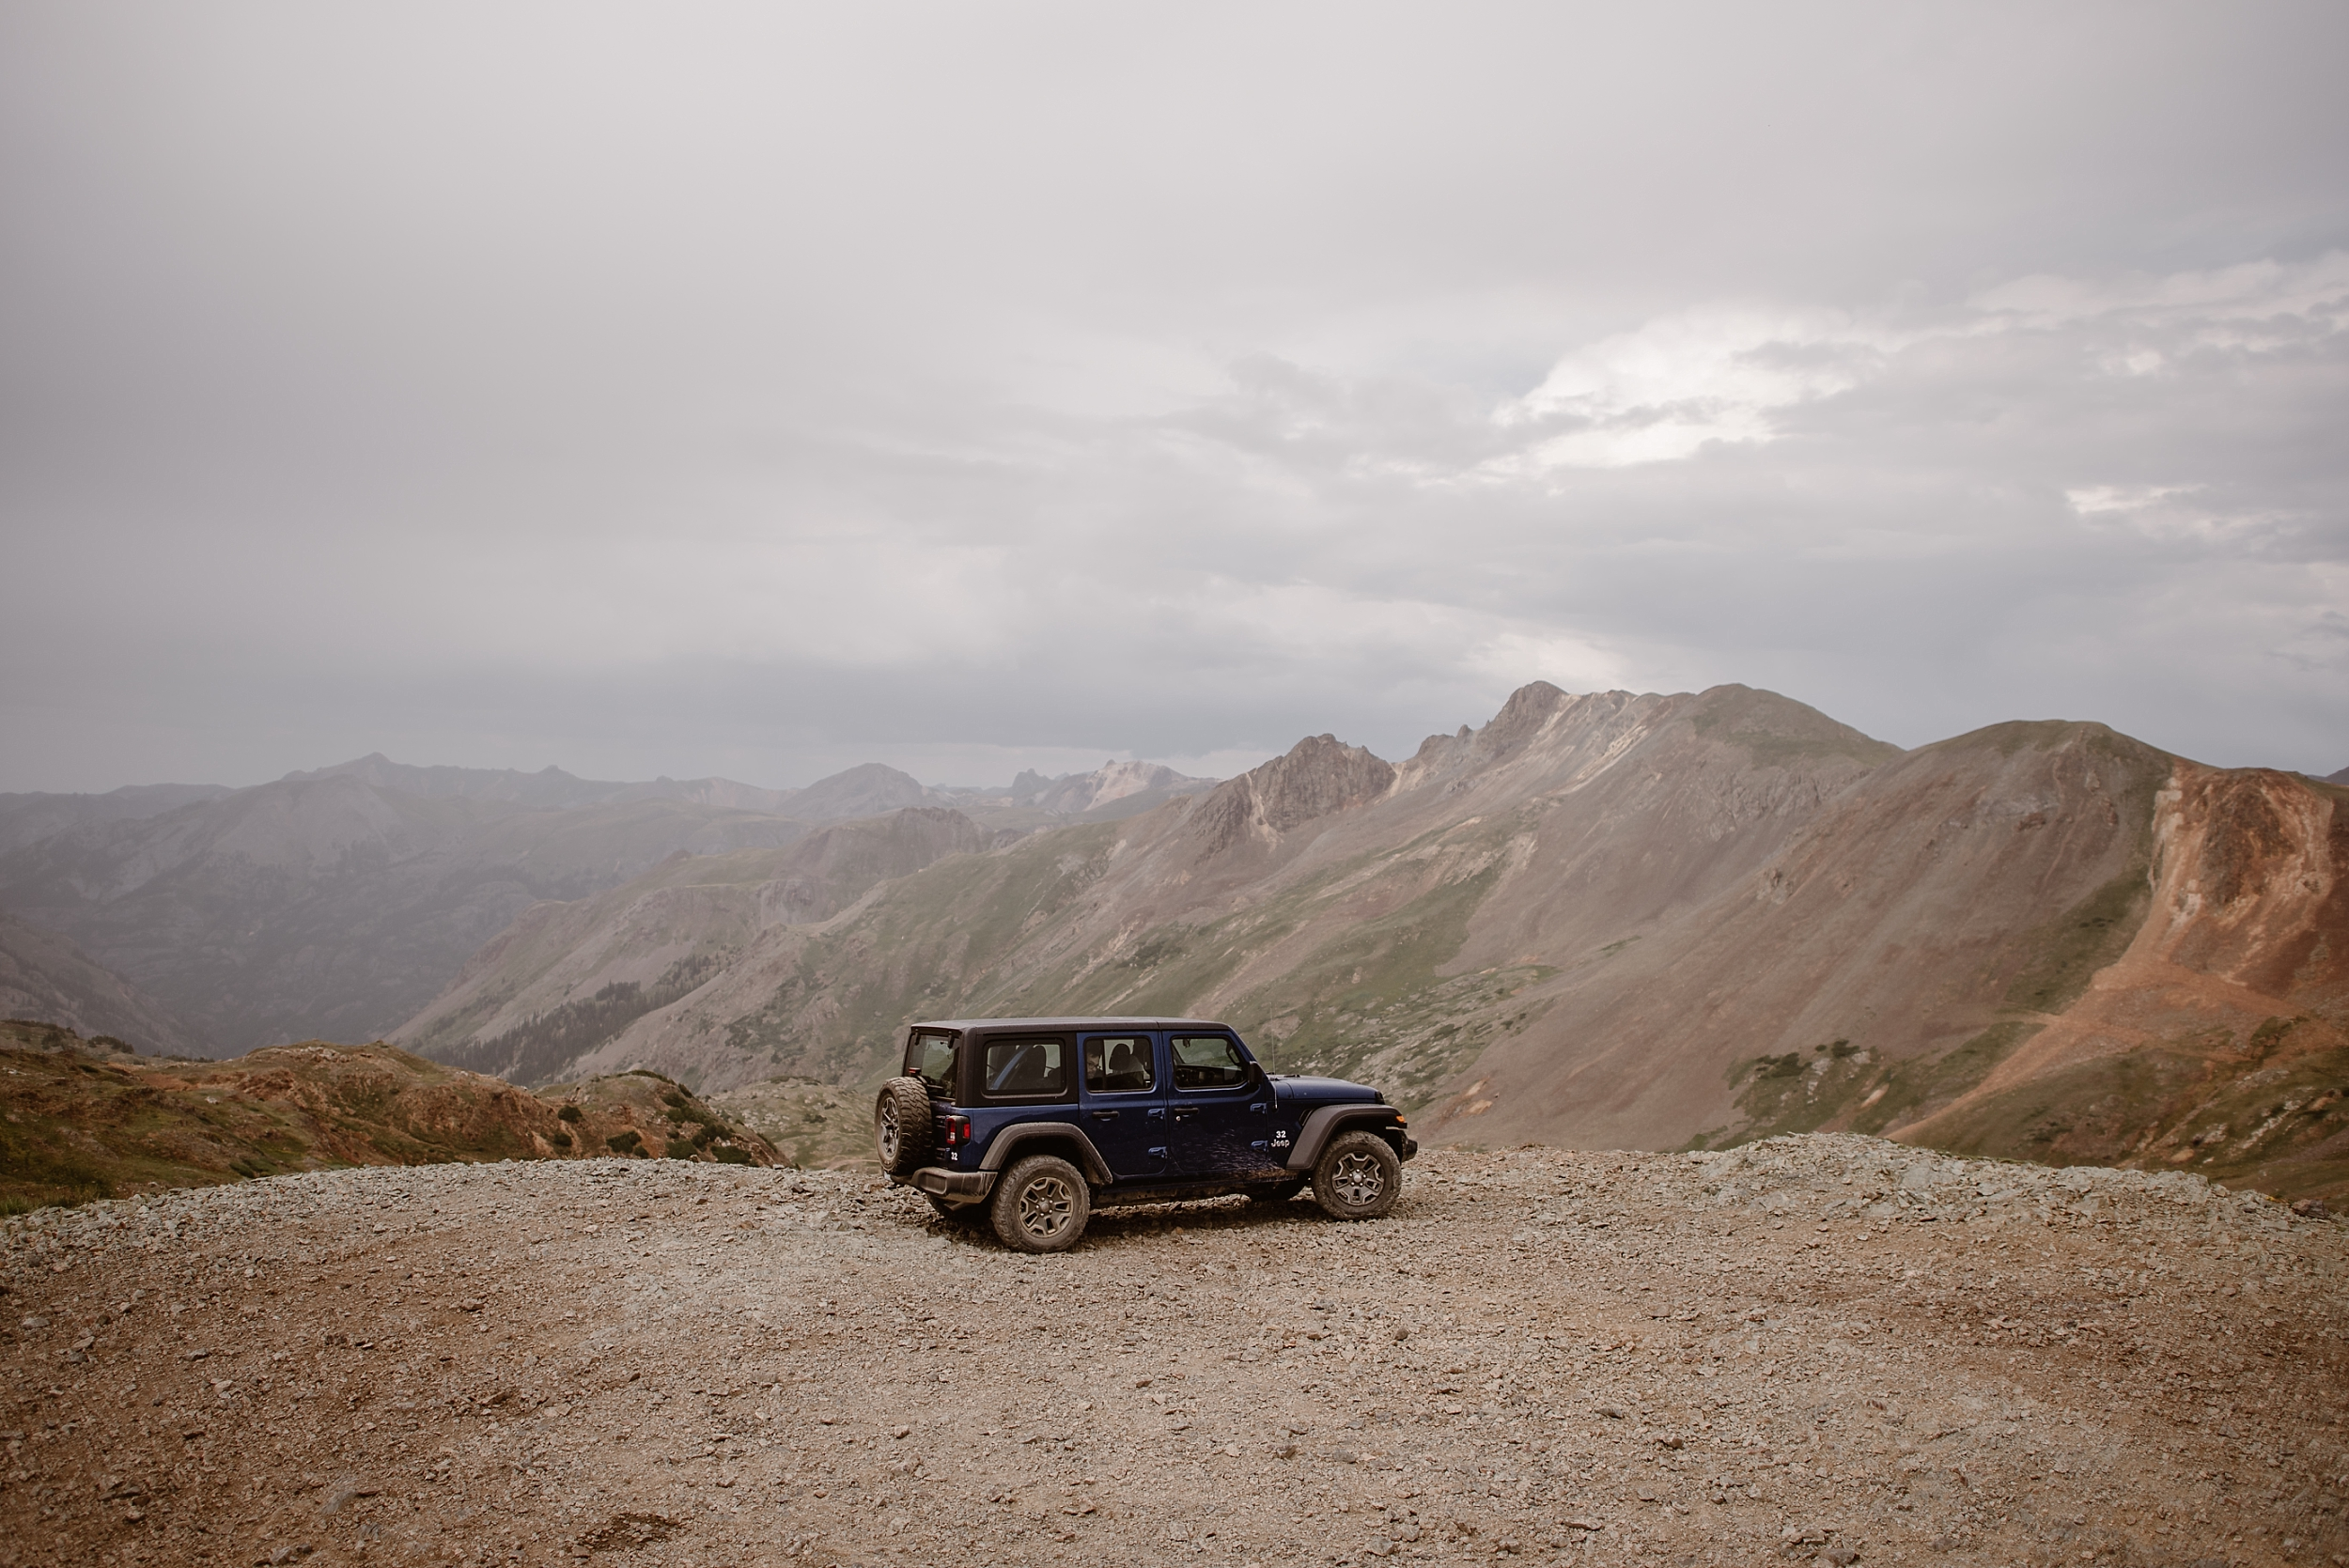 A navy blue adventure Jeep parks at the edge of a rock, sandy mountain. In the distance, a reddish mountain range can be seen. This was part of Katie and Logan's adventure elopement, and was one of the best elopement ideas yet.